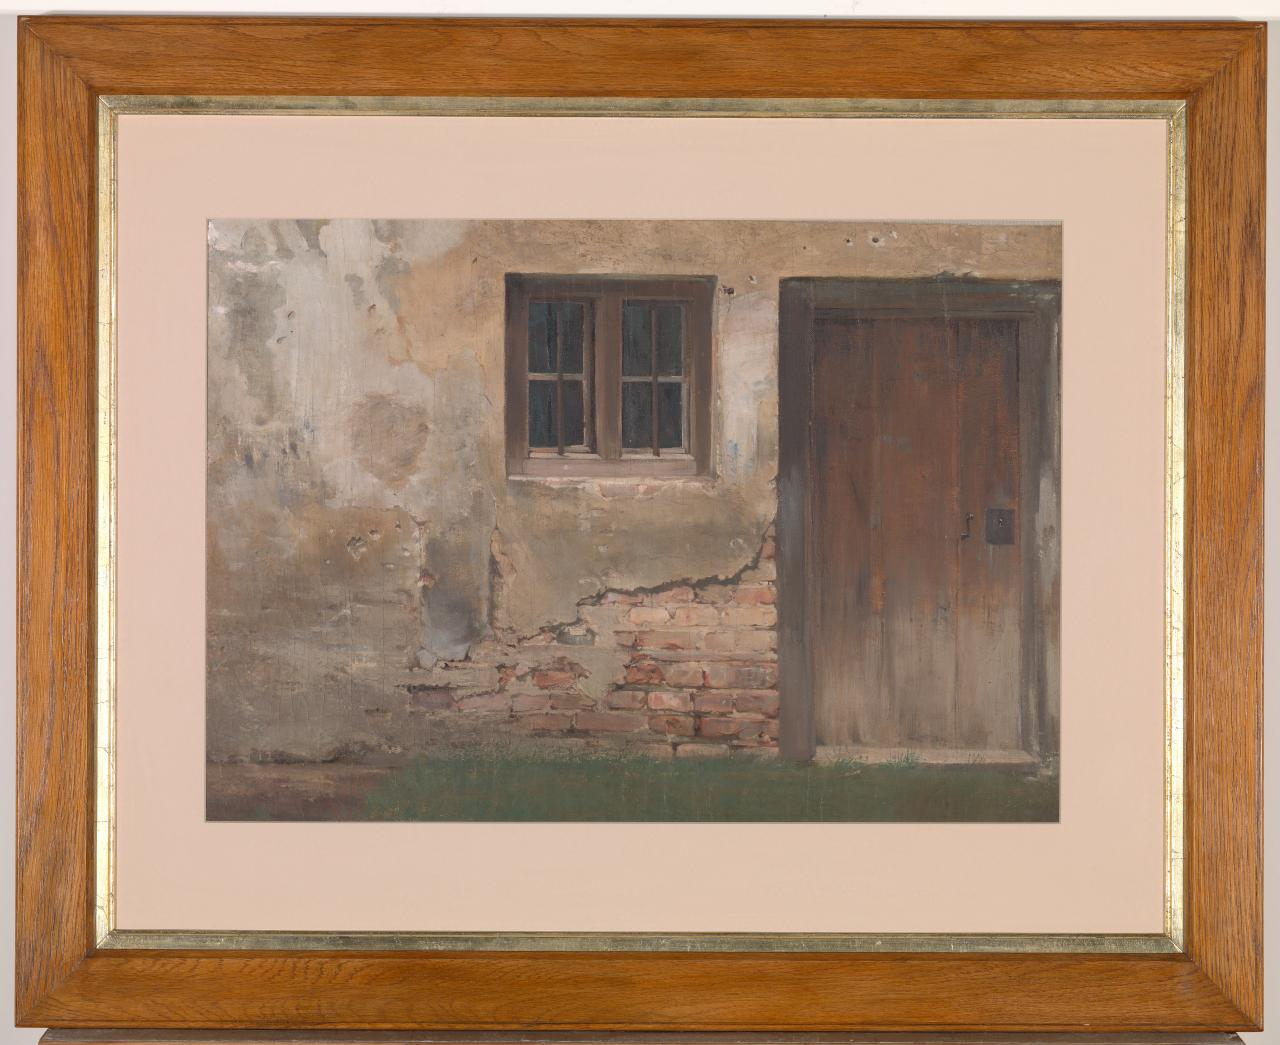 (Study of the exterior of a brick house)